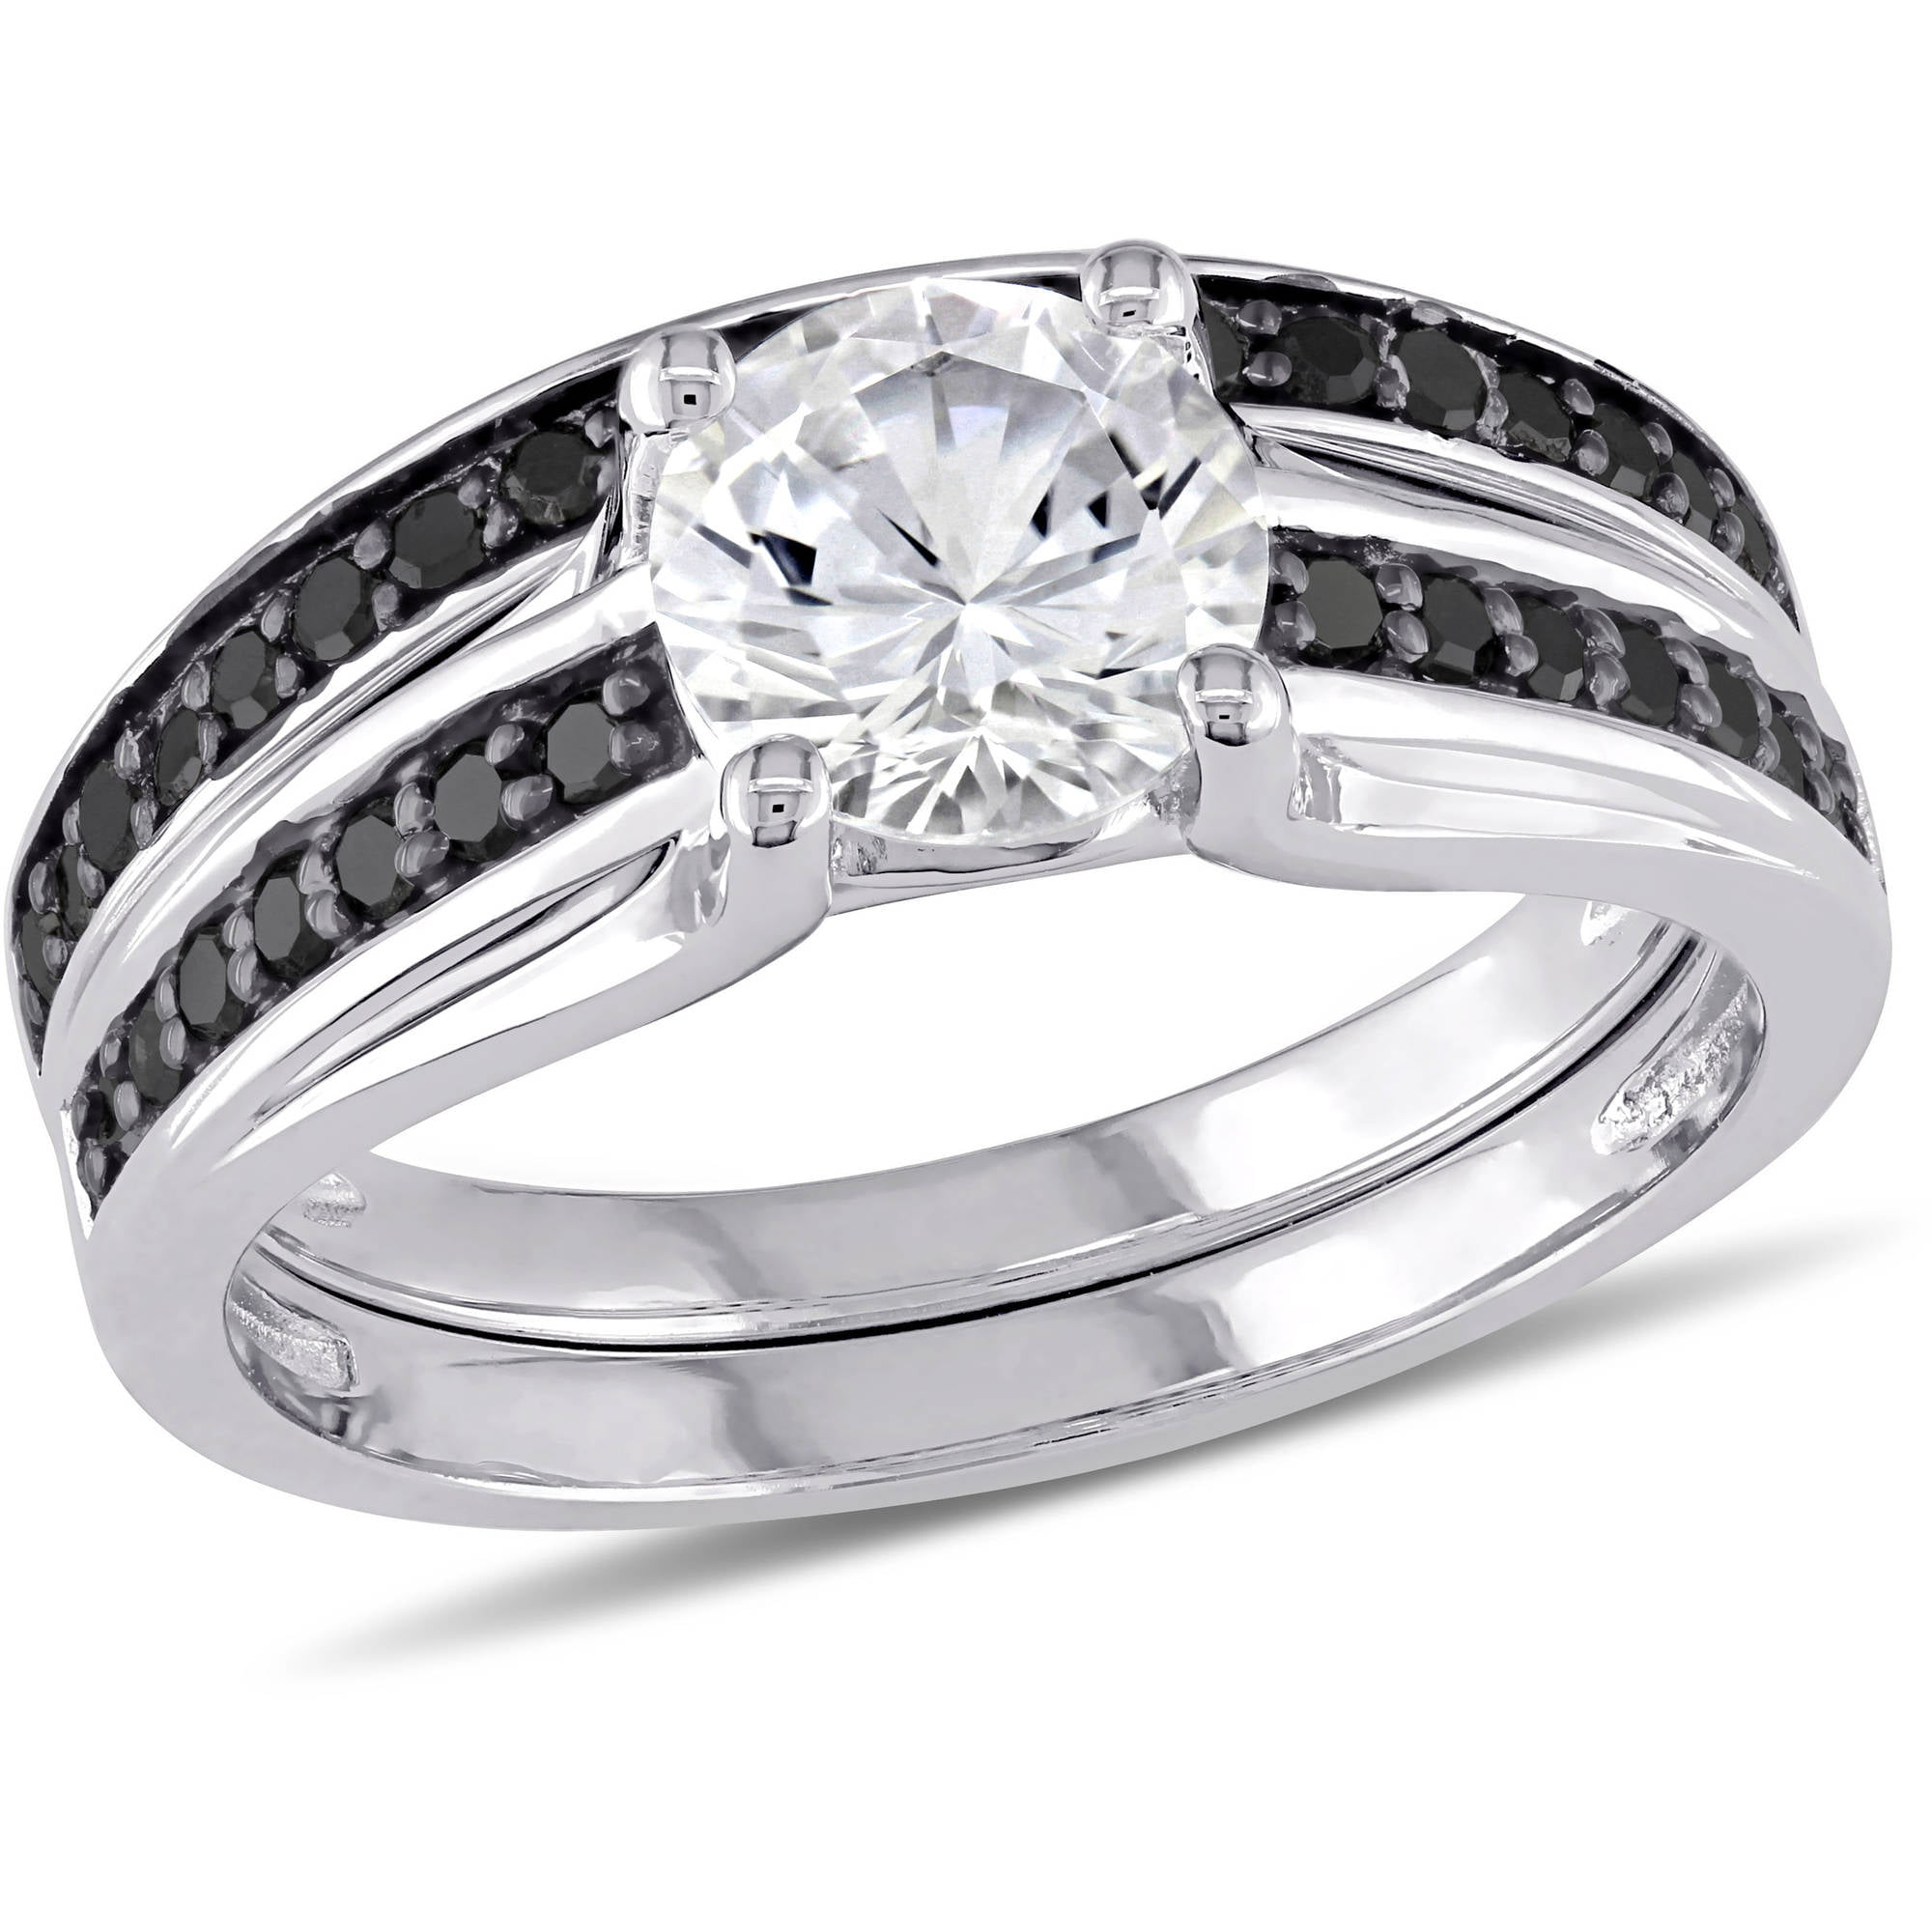 1-3 8 Carat T.G.W. Created White Sapphire and 1 3 Carat T.W. Black Diamond Sterling Silver Bridal Set by Generic